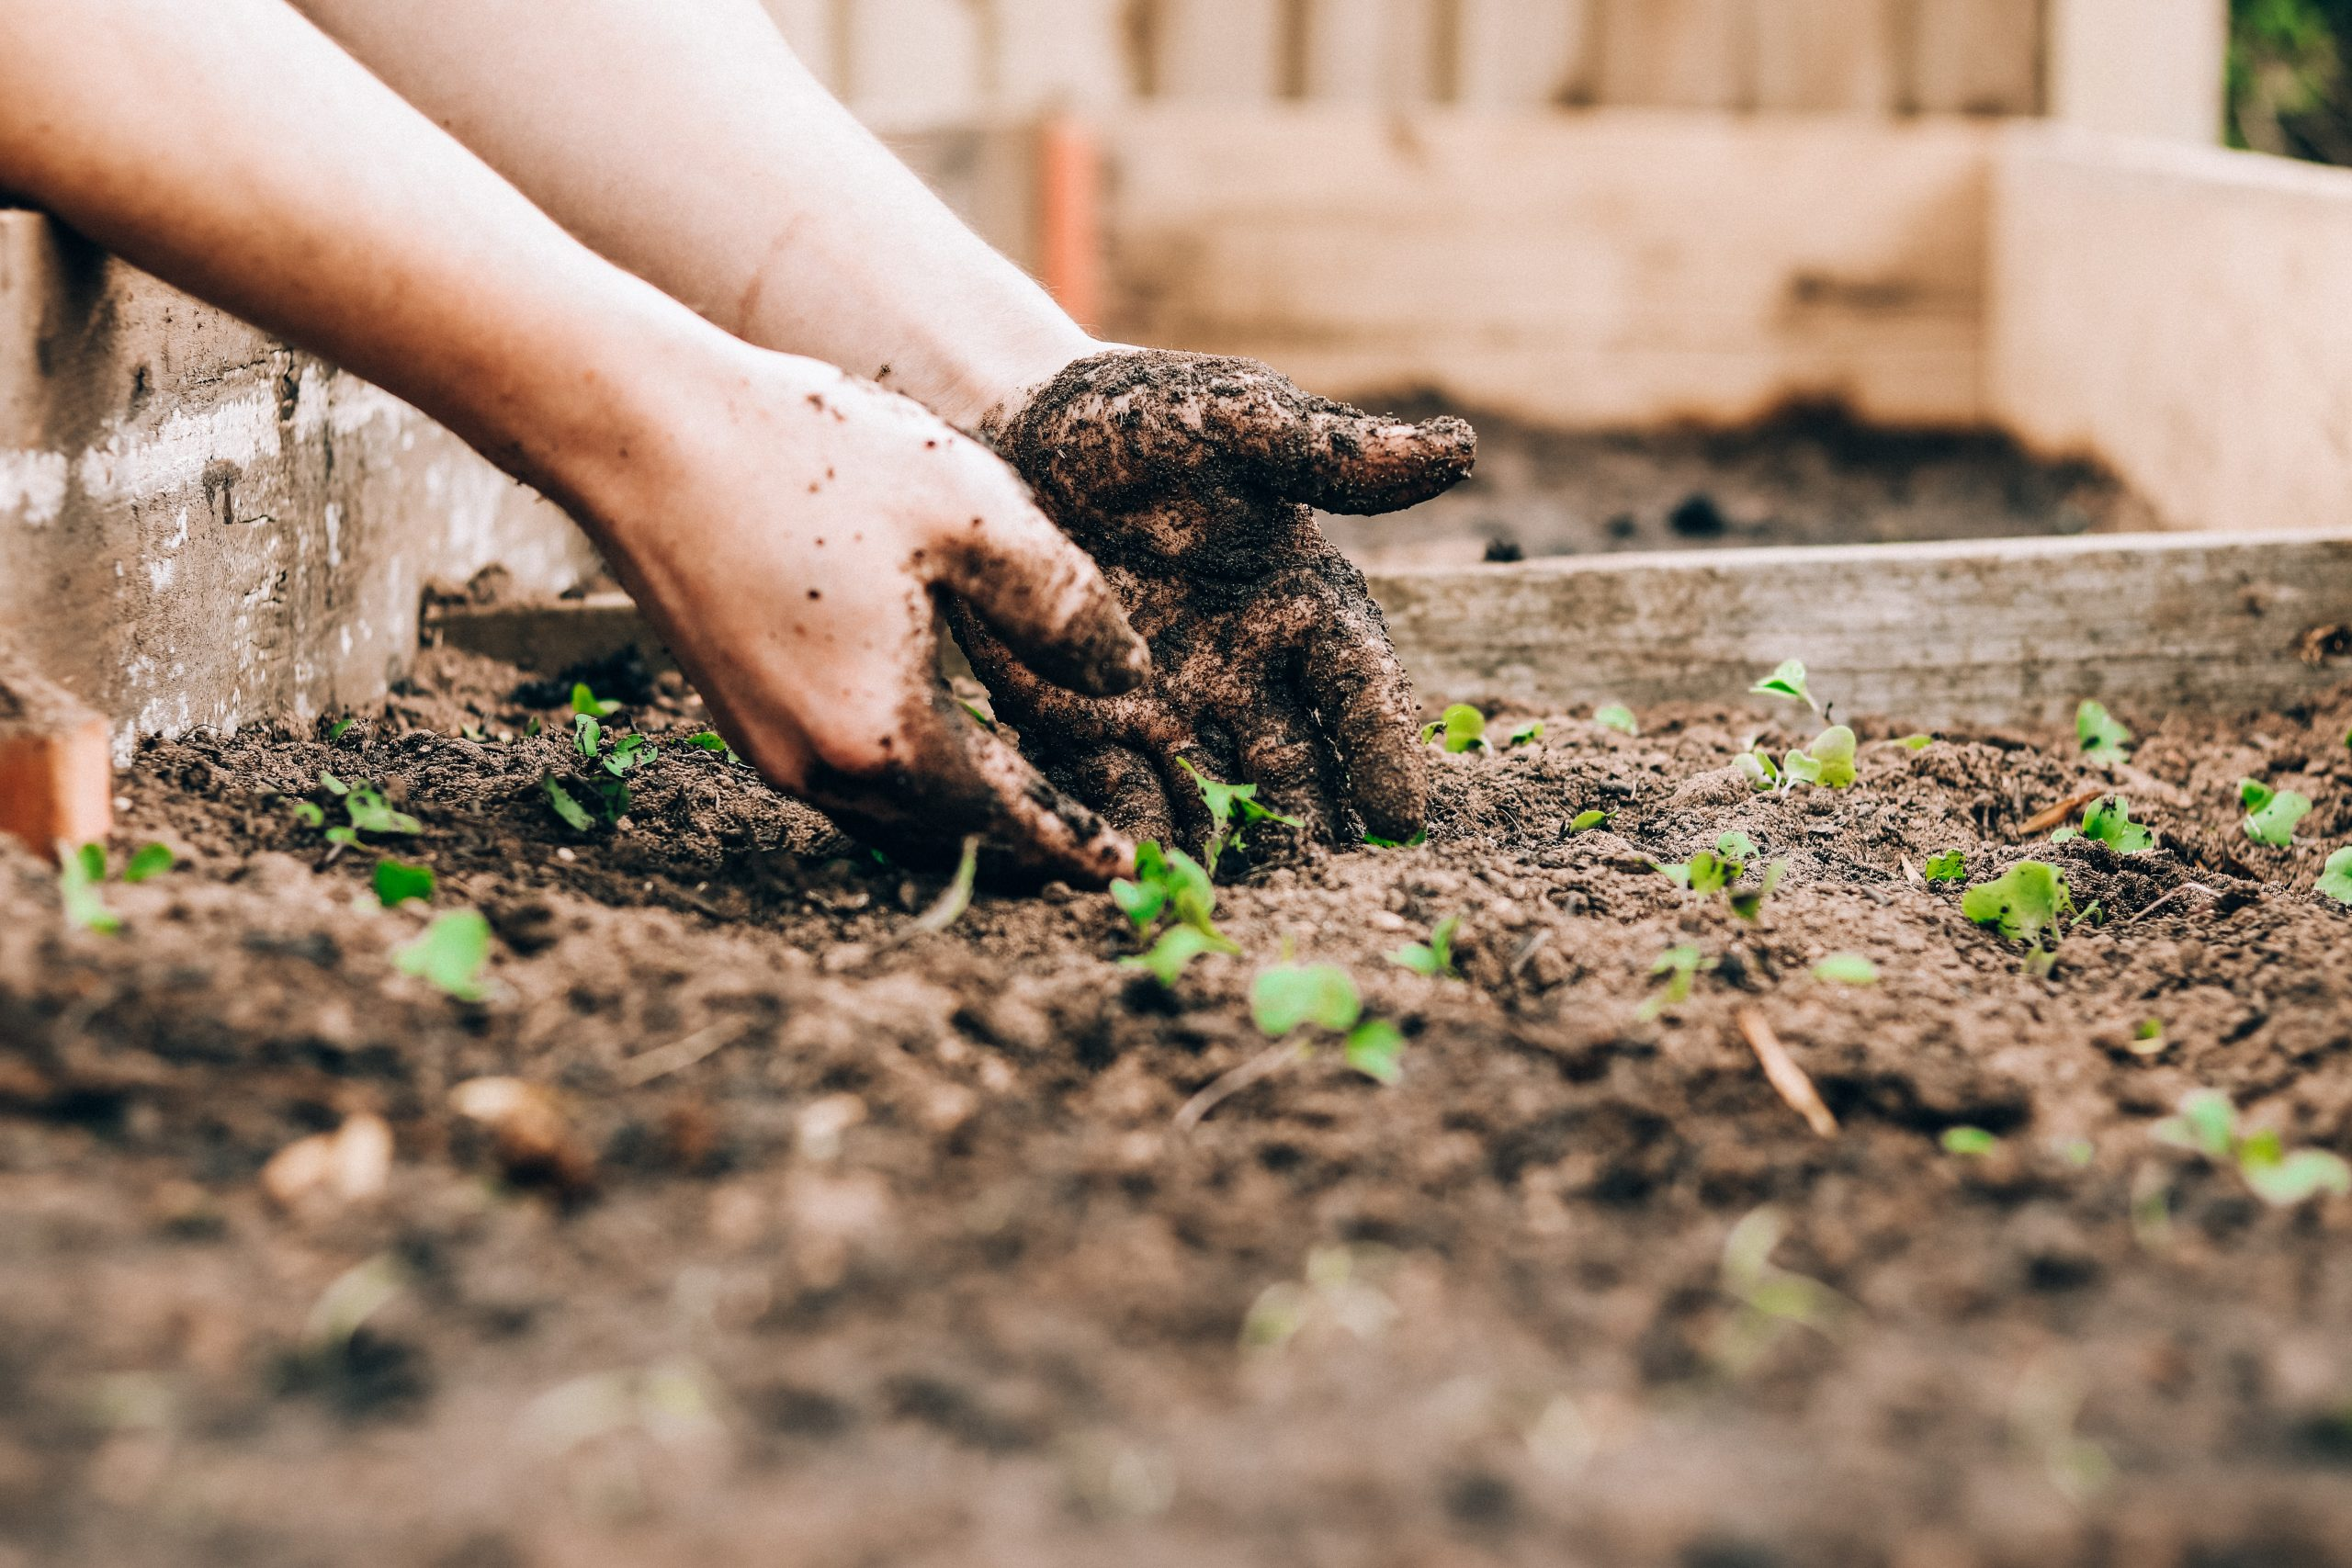 Growing food in schools helps children and the planet